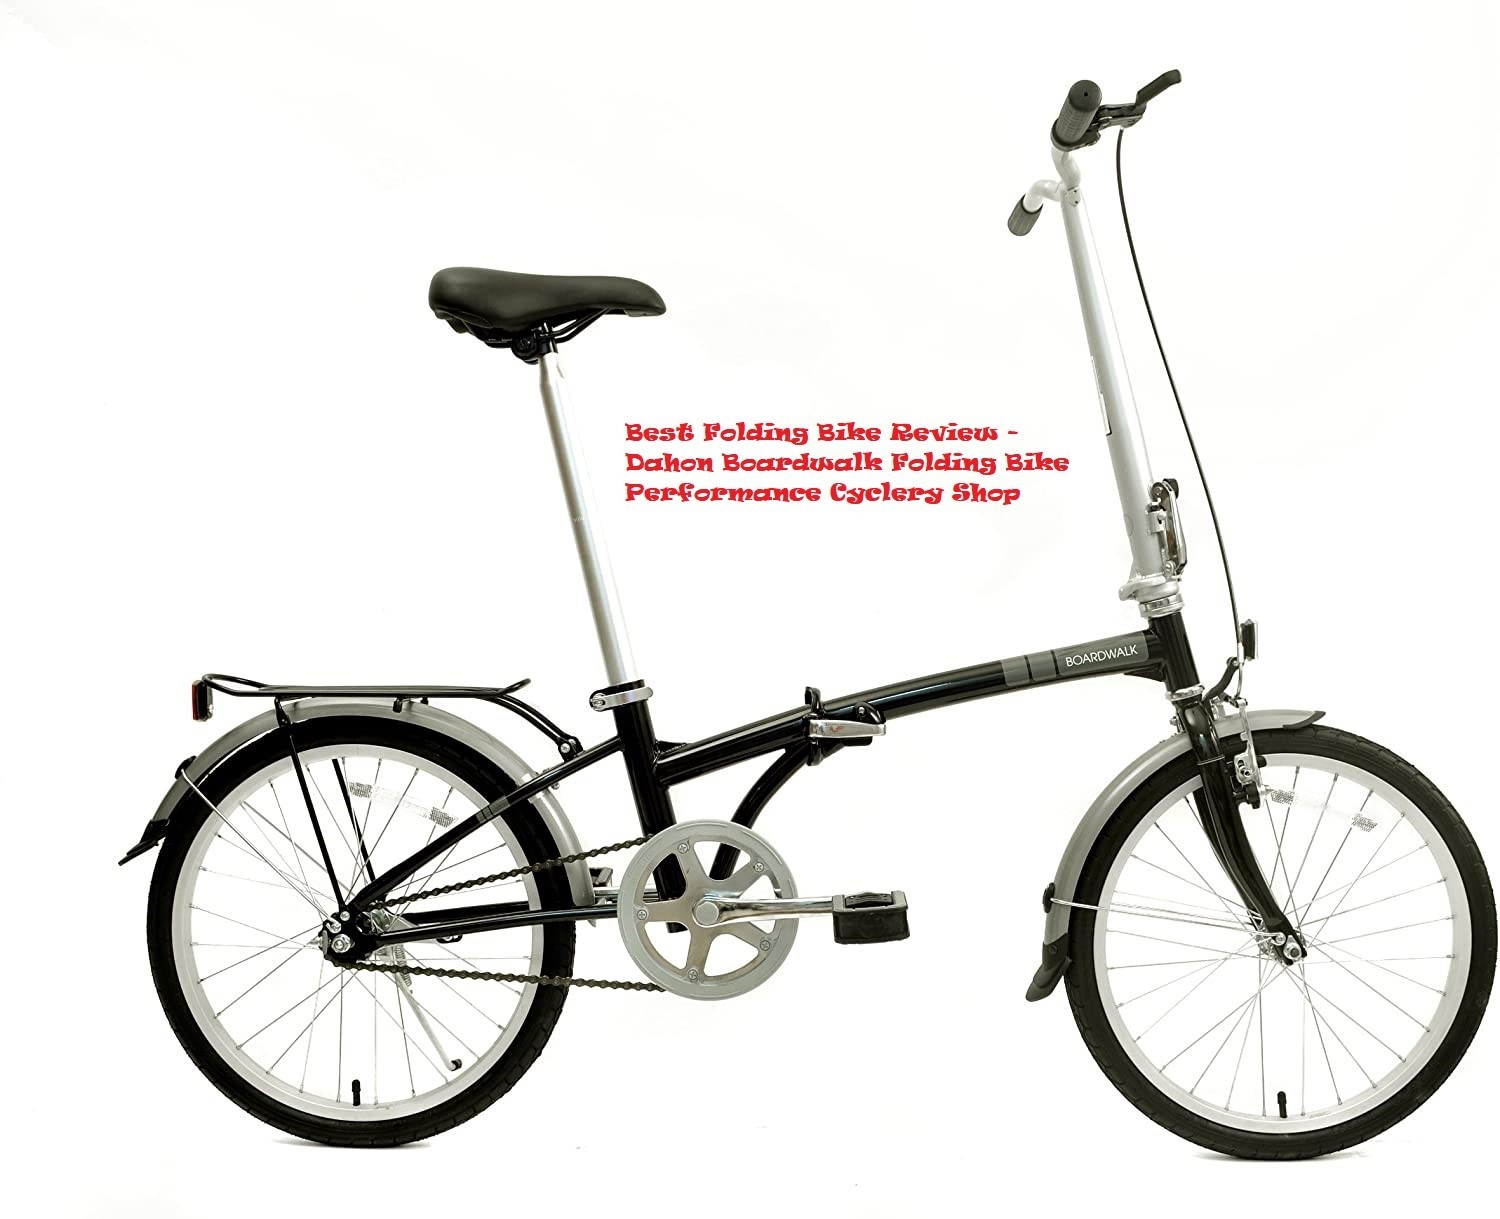 Best Folding Bike Review 2020- Dahon Boardwalk Folding Bike